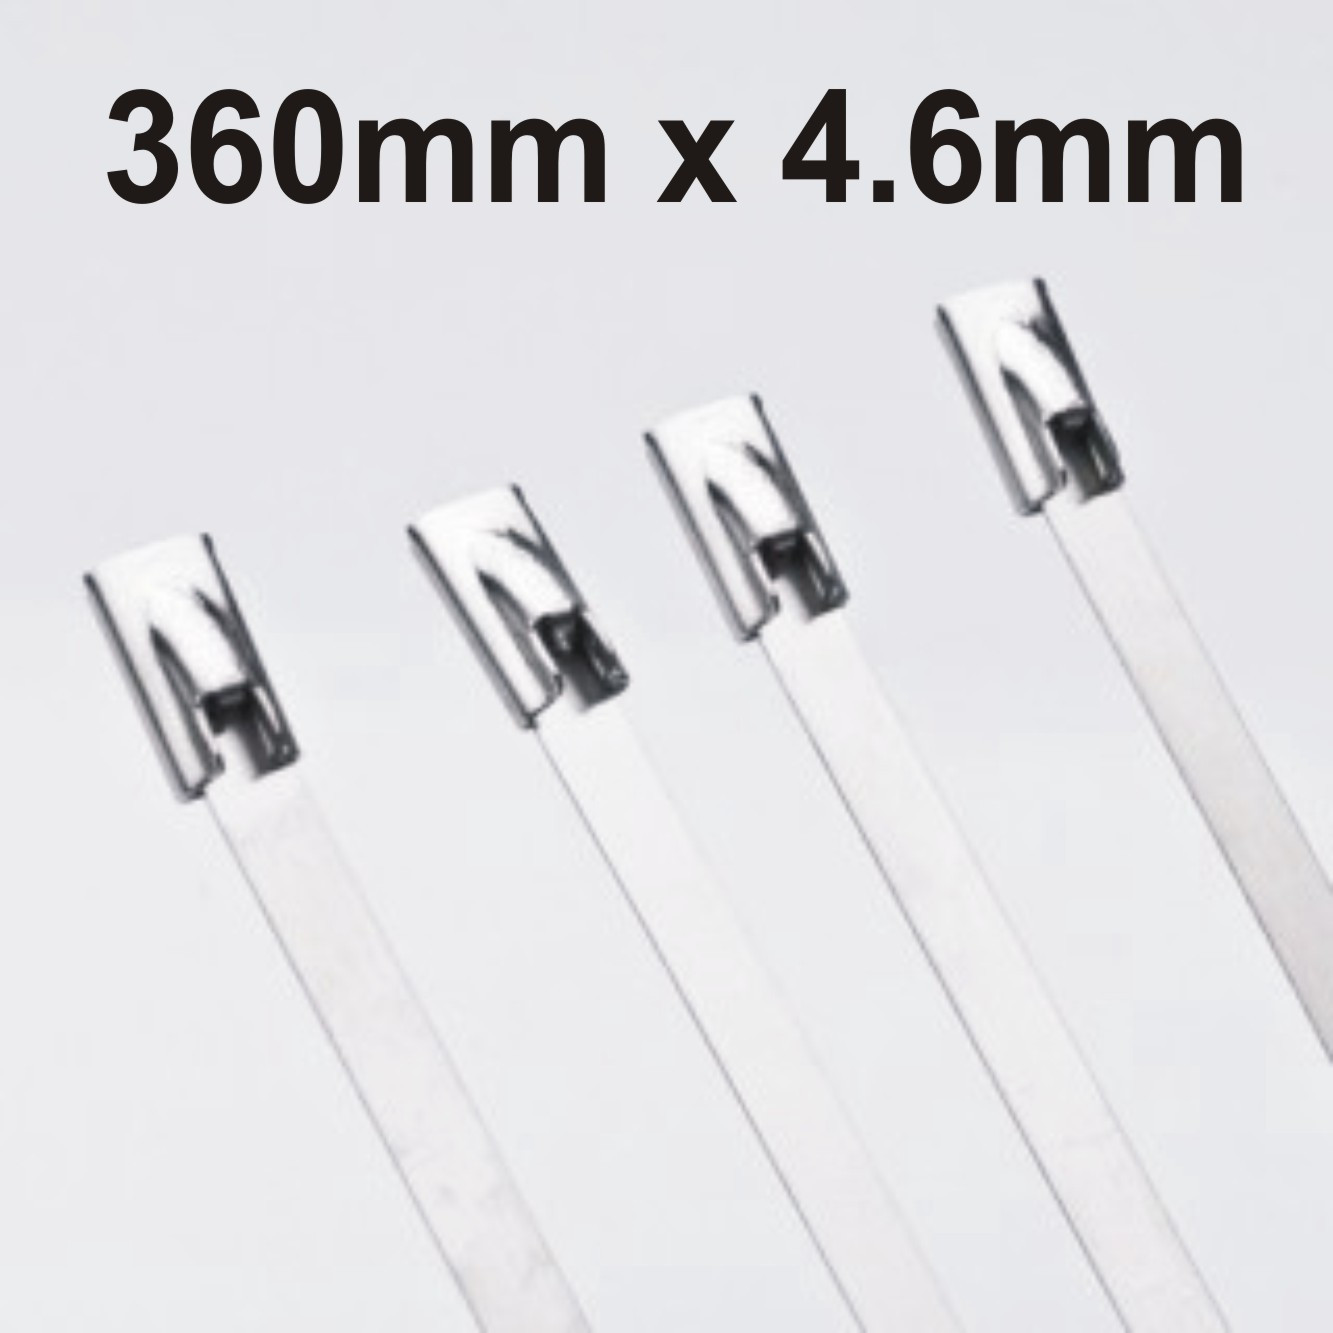 Stainless Steel Cable Ties Uncoated 360mm x 4.6mm